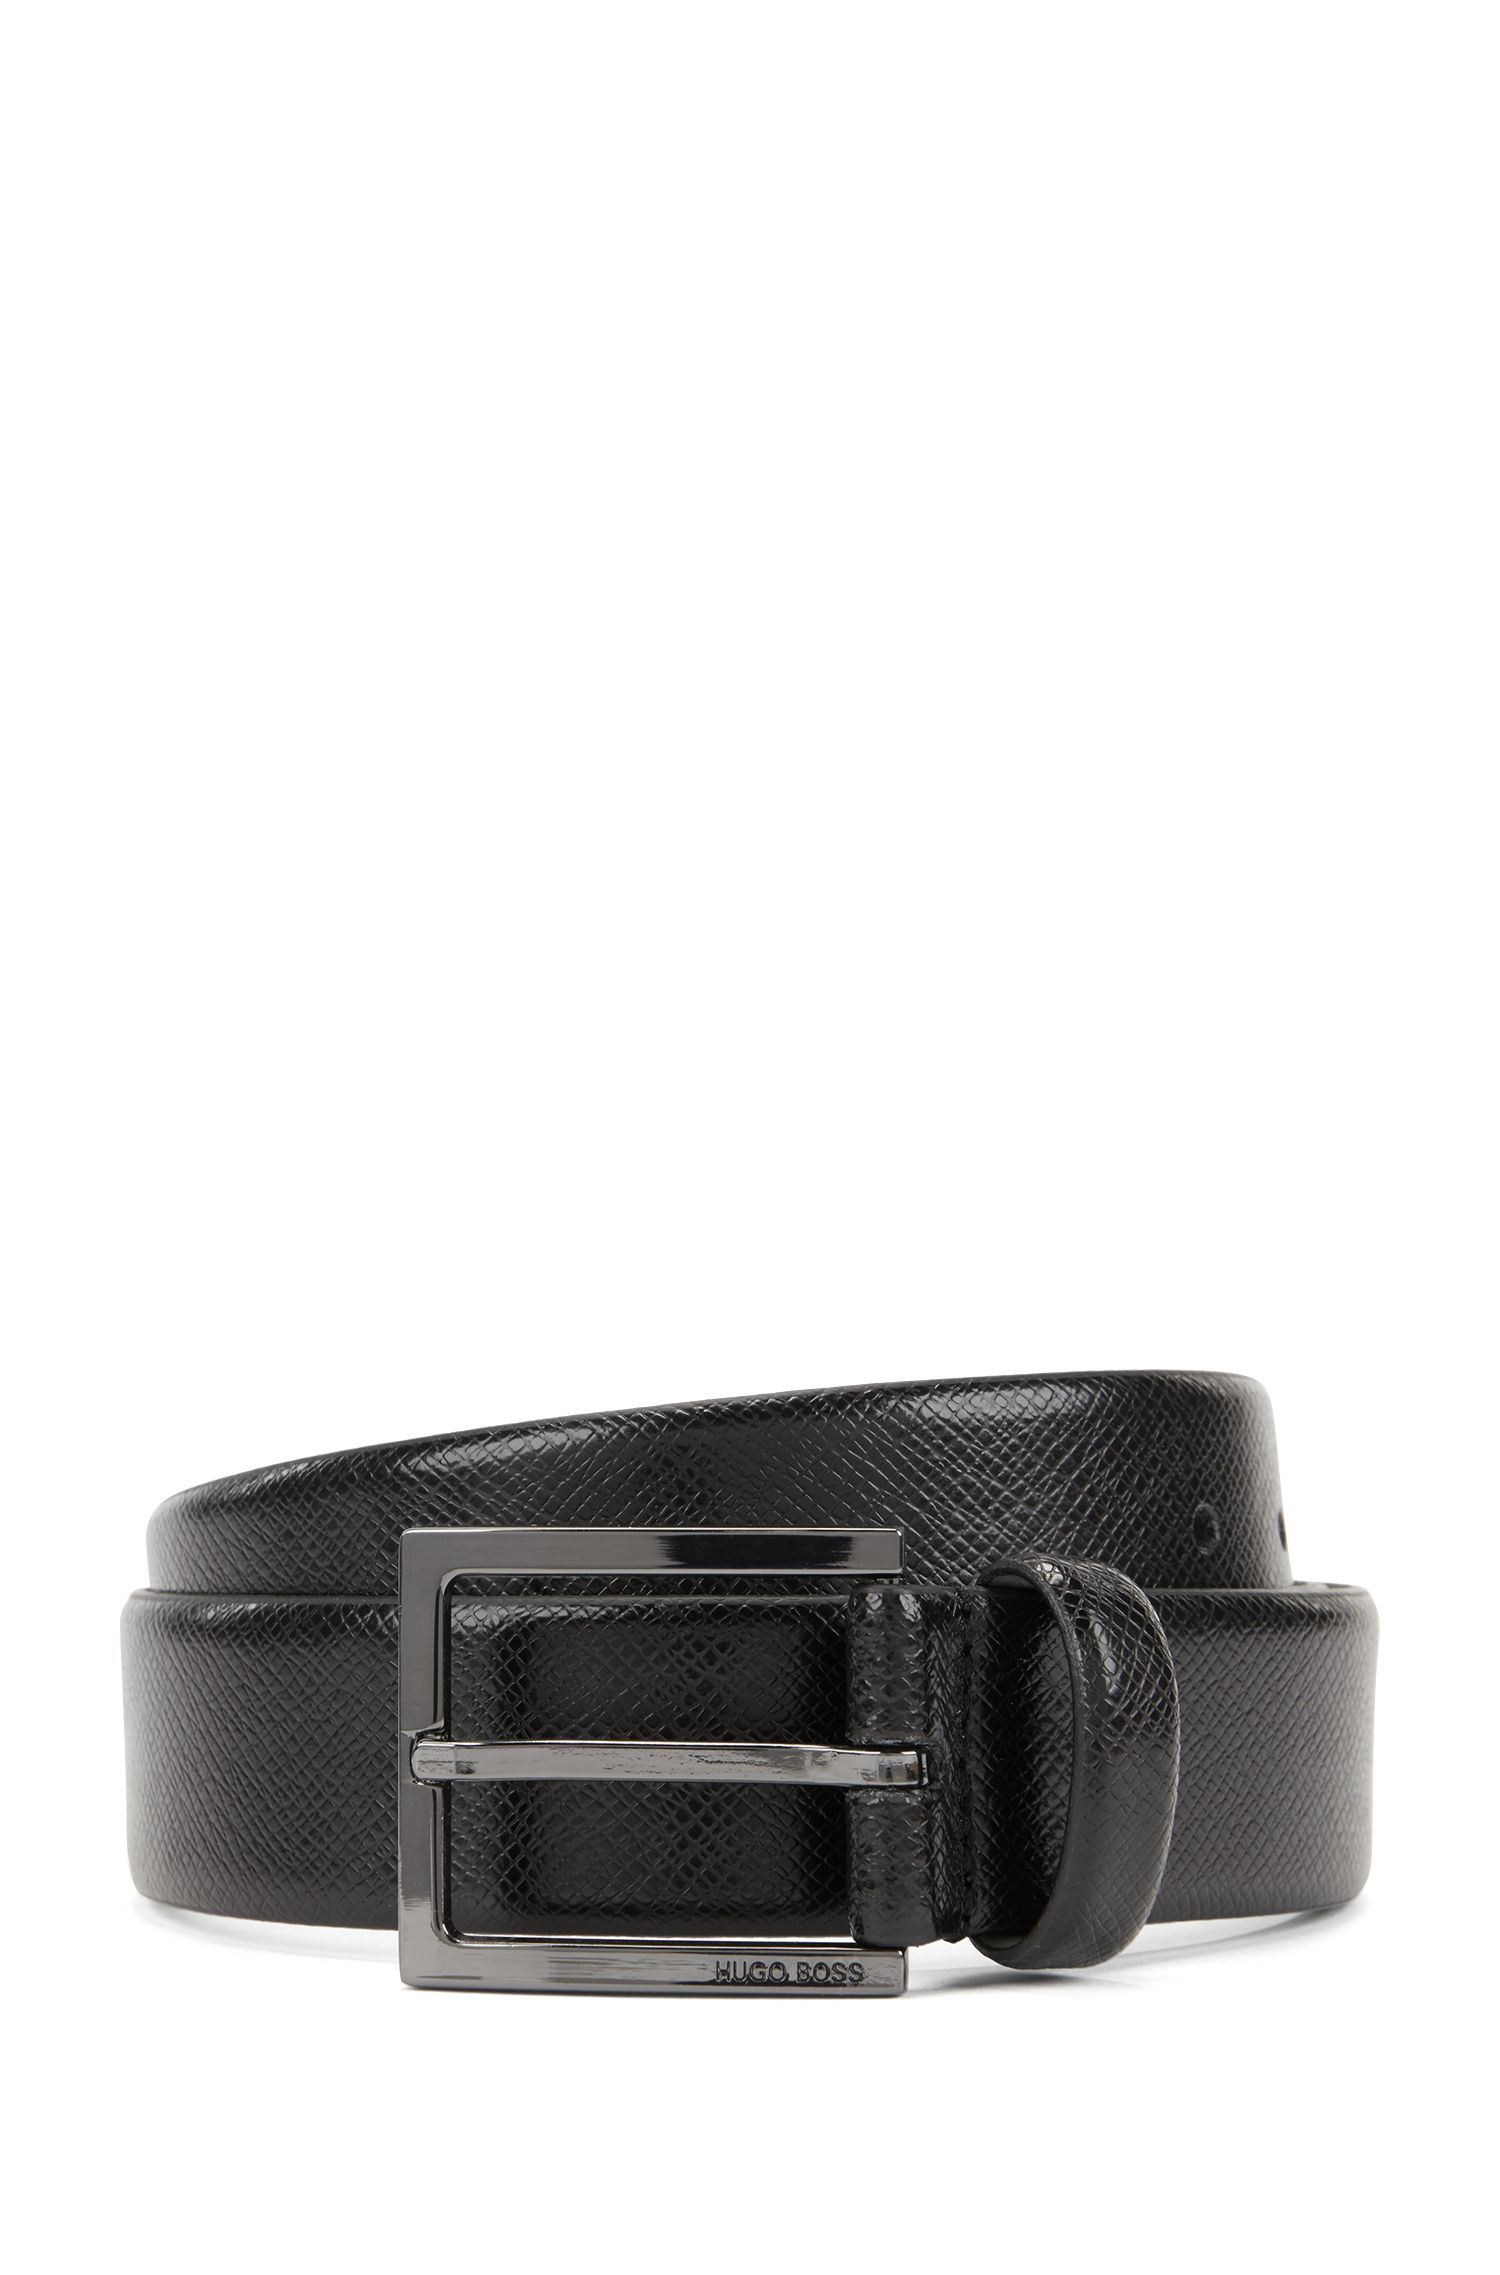 Leather belt with embossed Saffiano detailing